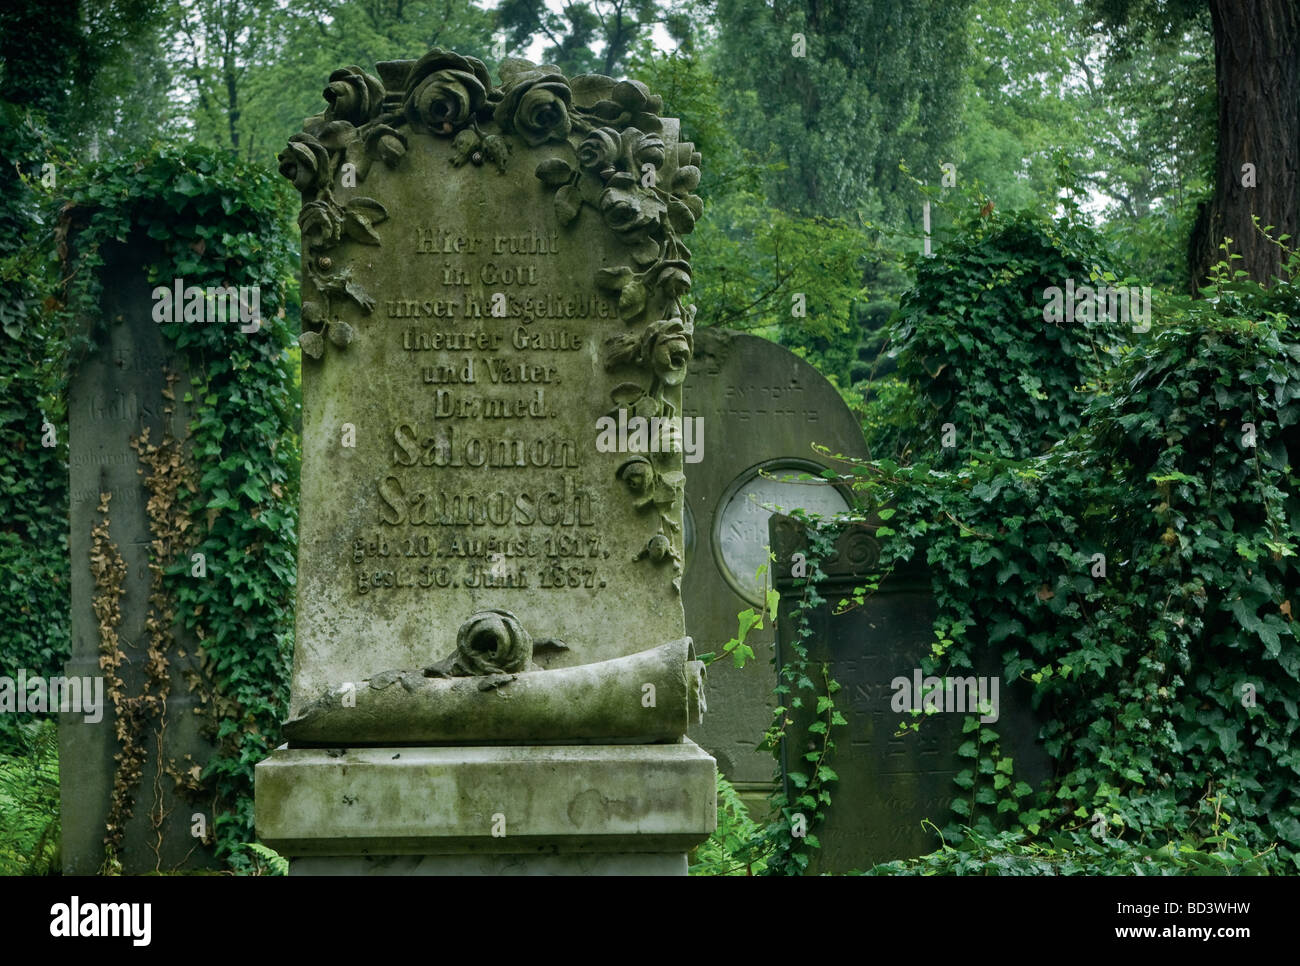 Art Nouveau tombstones at Jewish Cemetery in Wrocław Lower Silesia region Poland - Stock Image